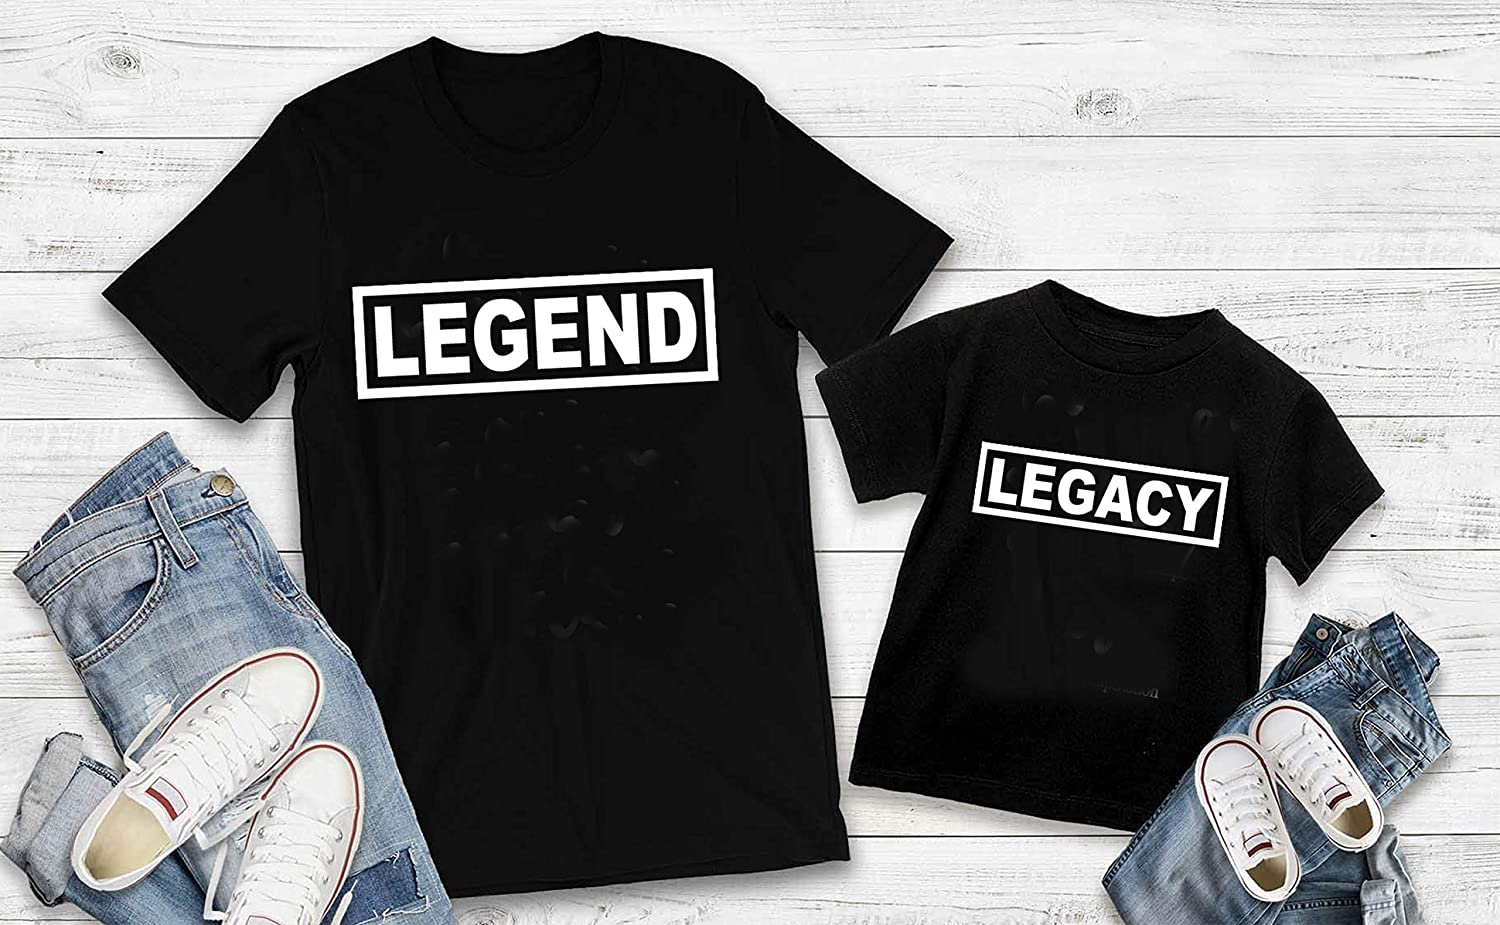 Legend or Legacy T shirt Special sale item - ONE mommy me ONLY and SHIRT Outlet ☆ Free Shipping family